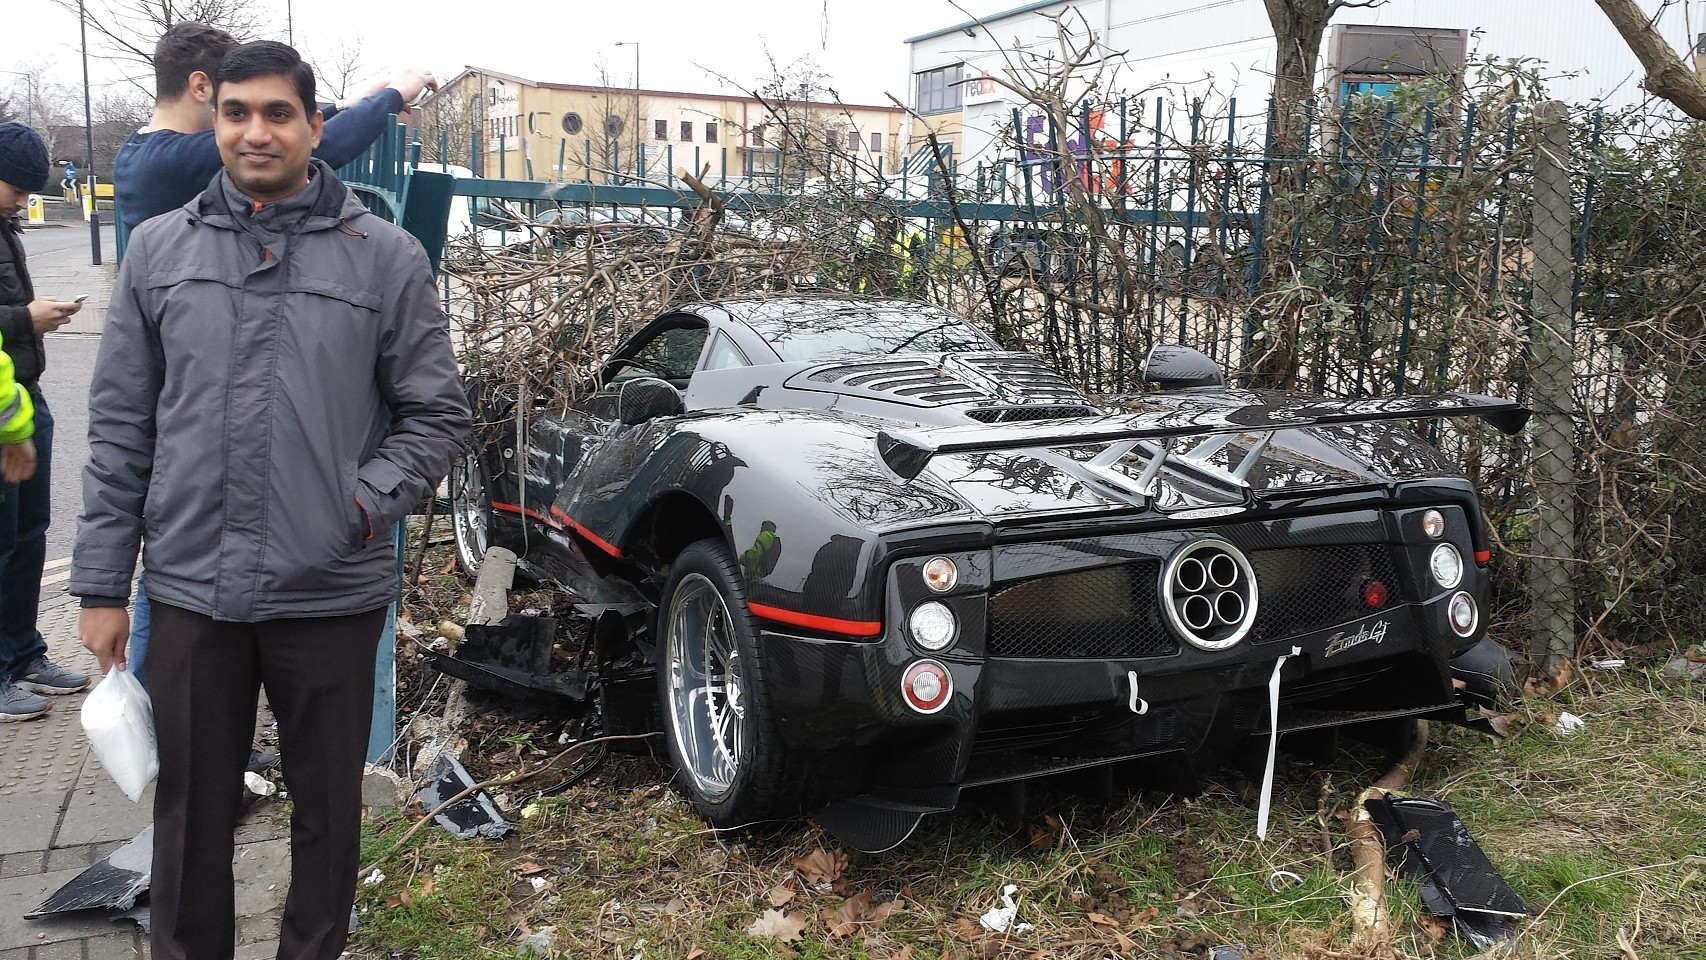 The supercar crashed in London